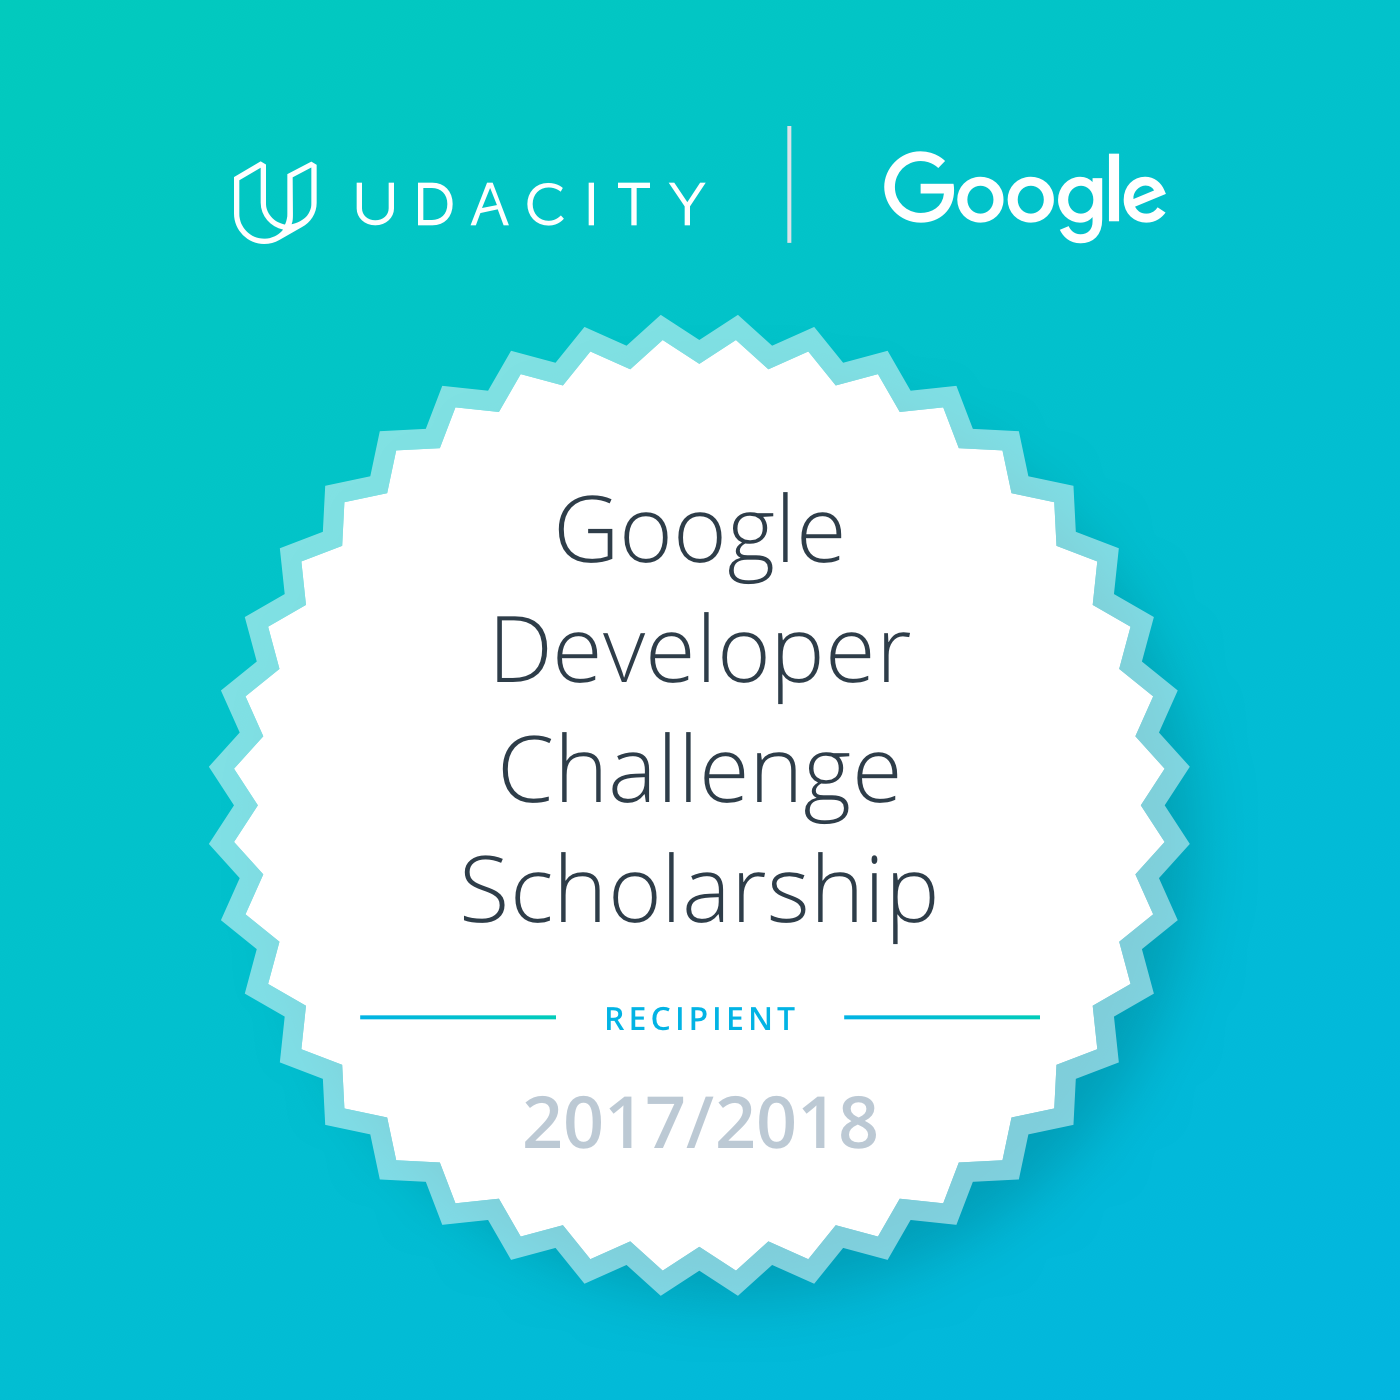 Google Developer Challenge Scholarship